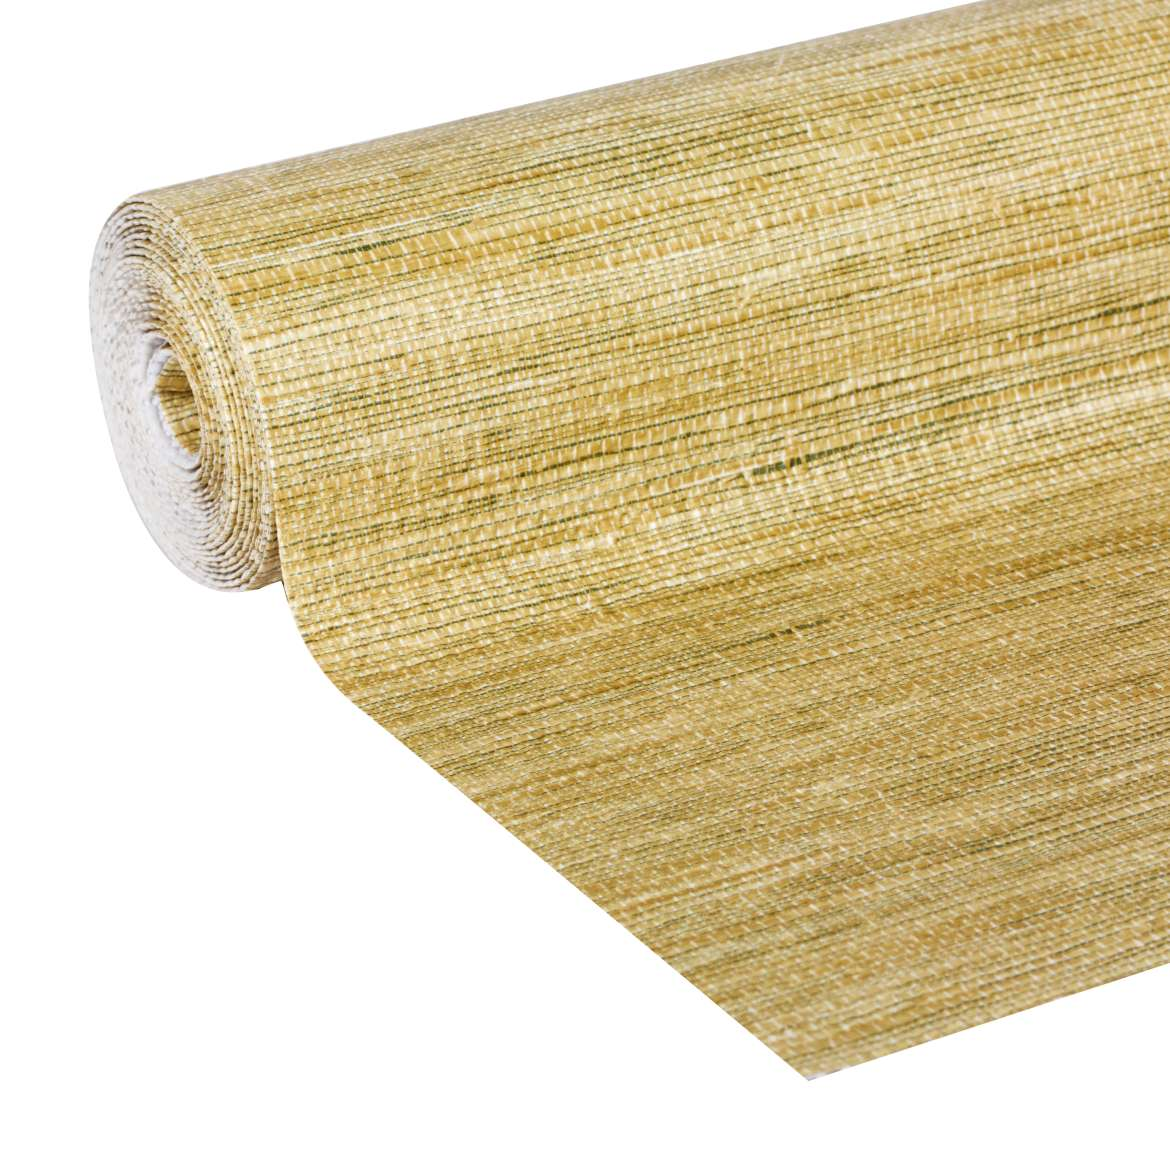 Duck Brand Select Grip Easy Liner Brand Shelf Liner - Burlap, 12 in. x 10 ft.